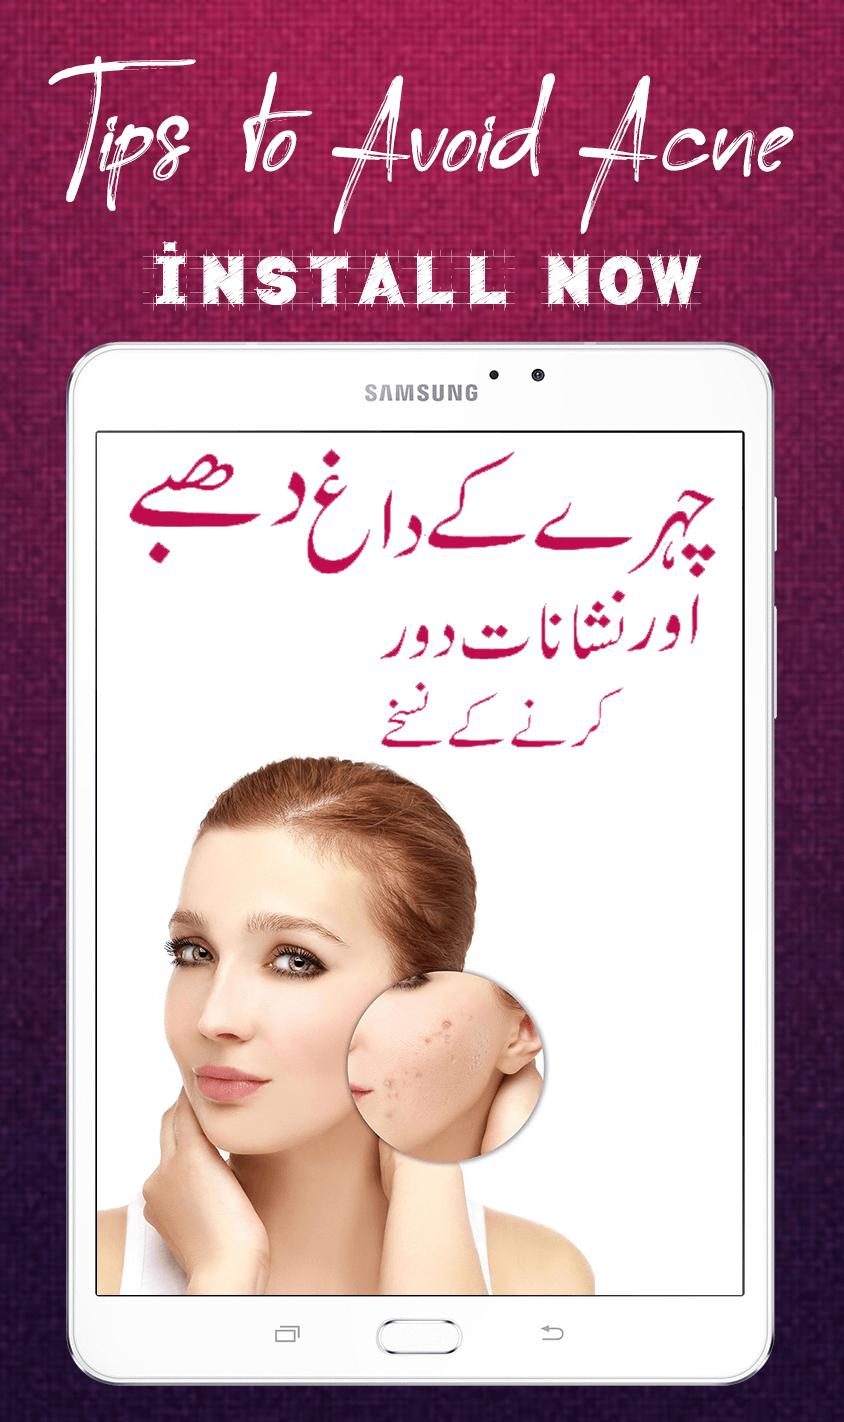 Face Pimples Home Remedy Solutions Urdu Tips For Android Apk